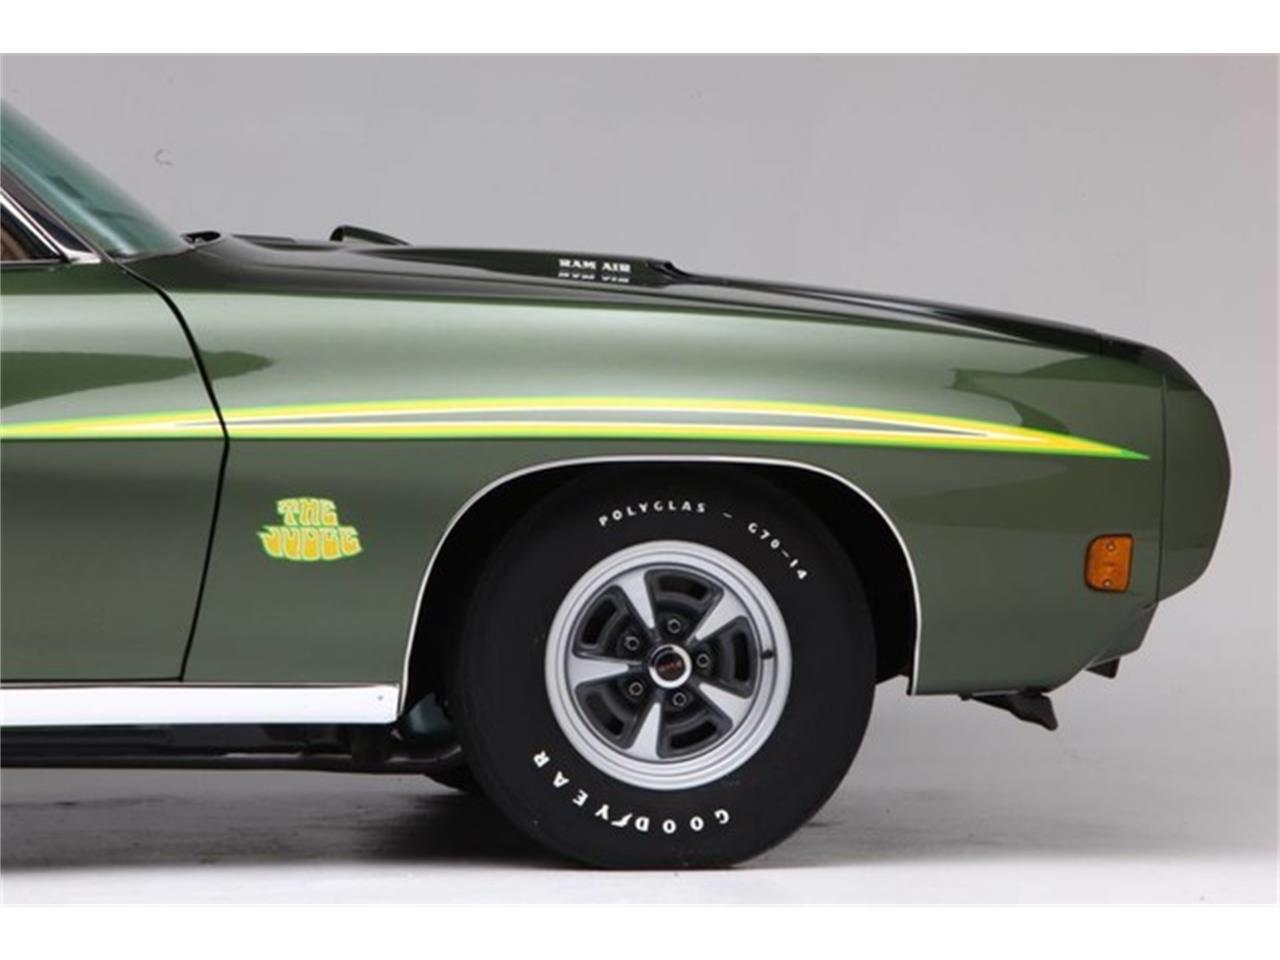 Large Picture of Classic 1970 Pontiac GTO (The Judge) located in New York - $219,000.00 - PU25